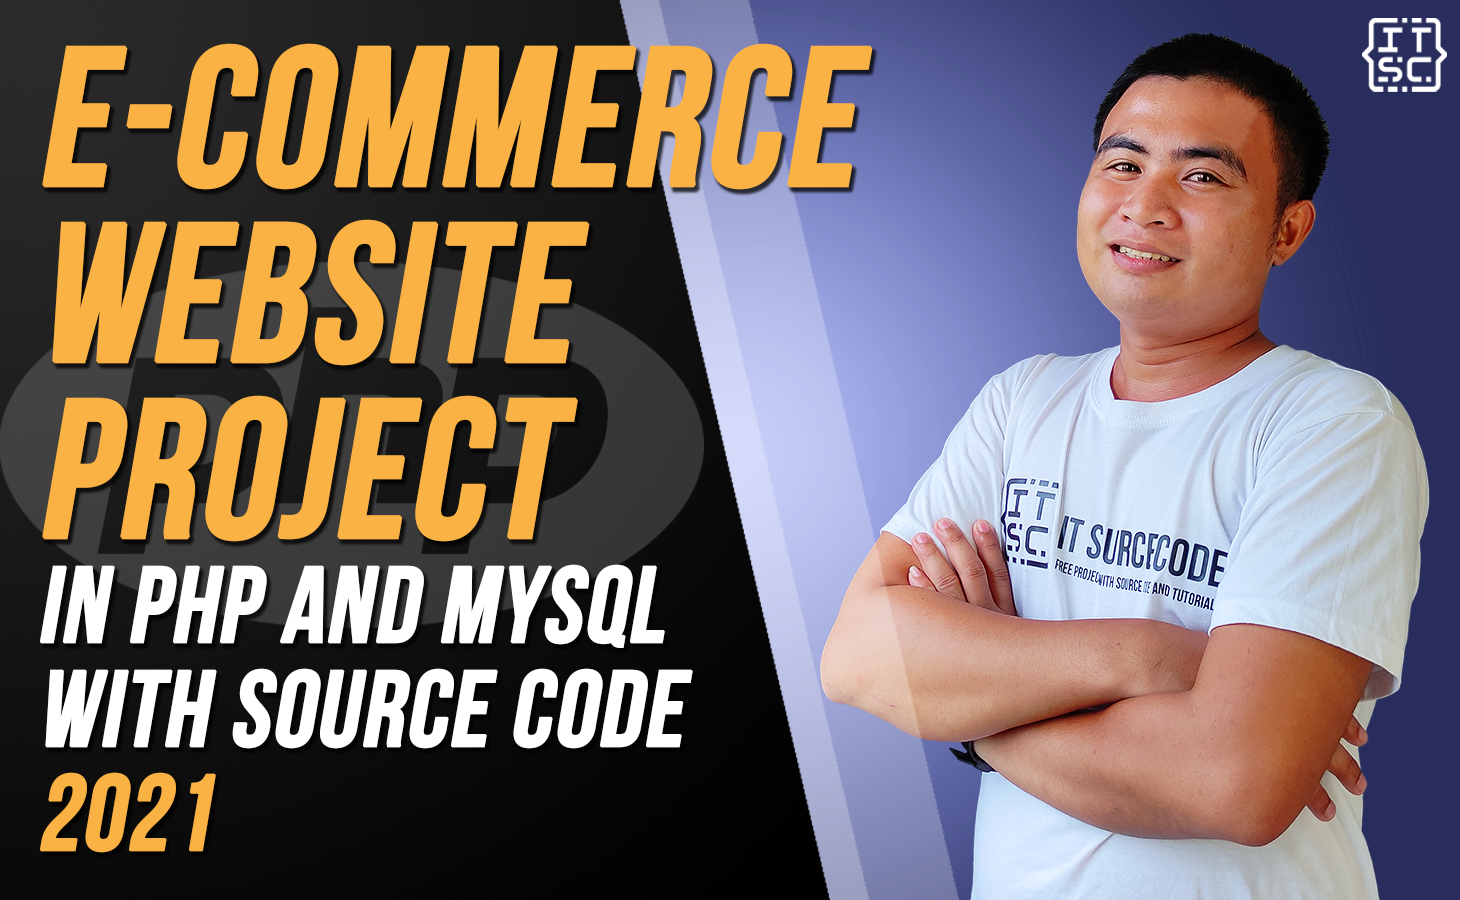 E Commerce Project In PHP With Source Code